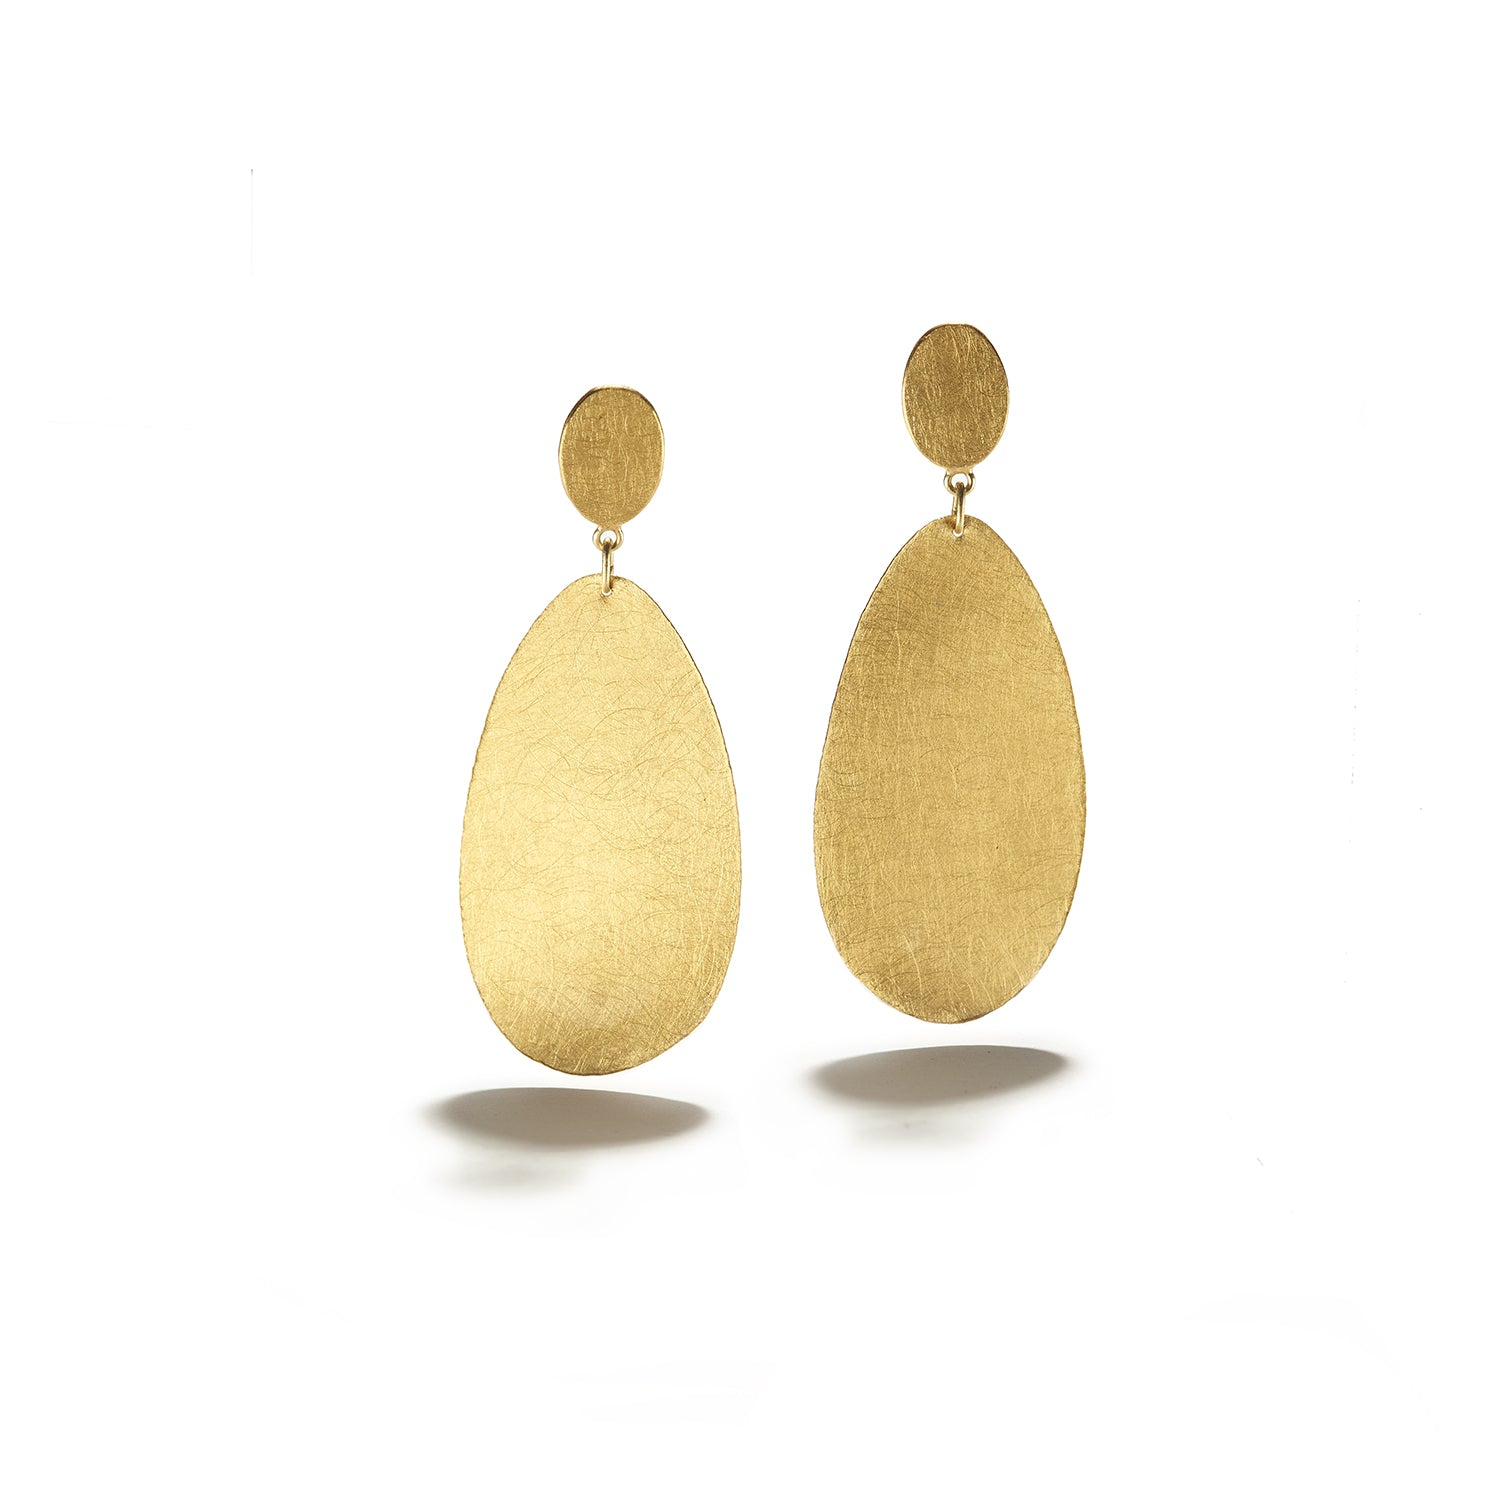 Oval Hanging Gold Earrings